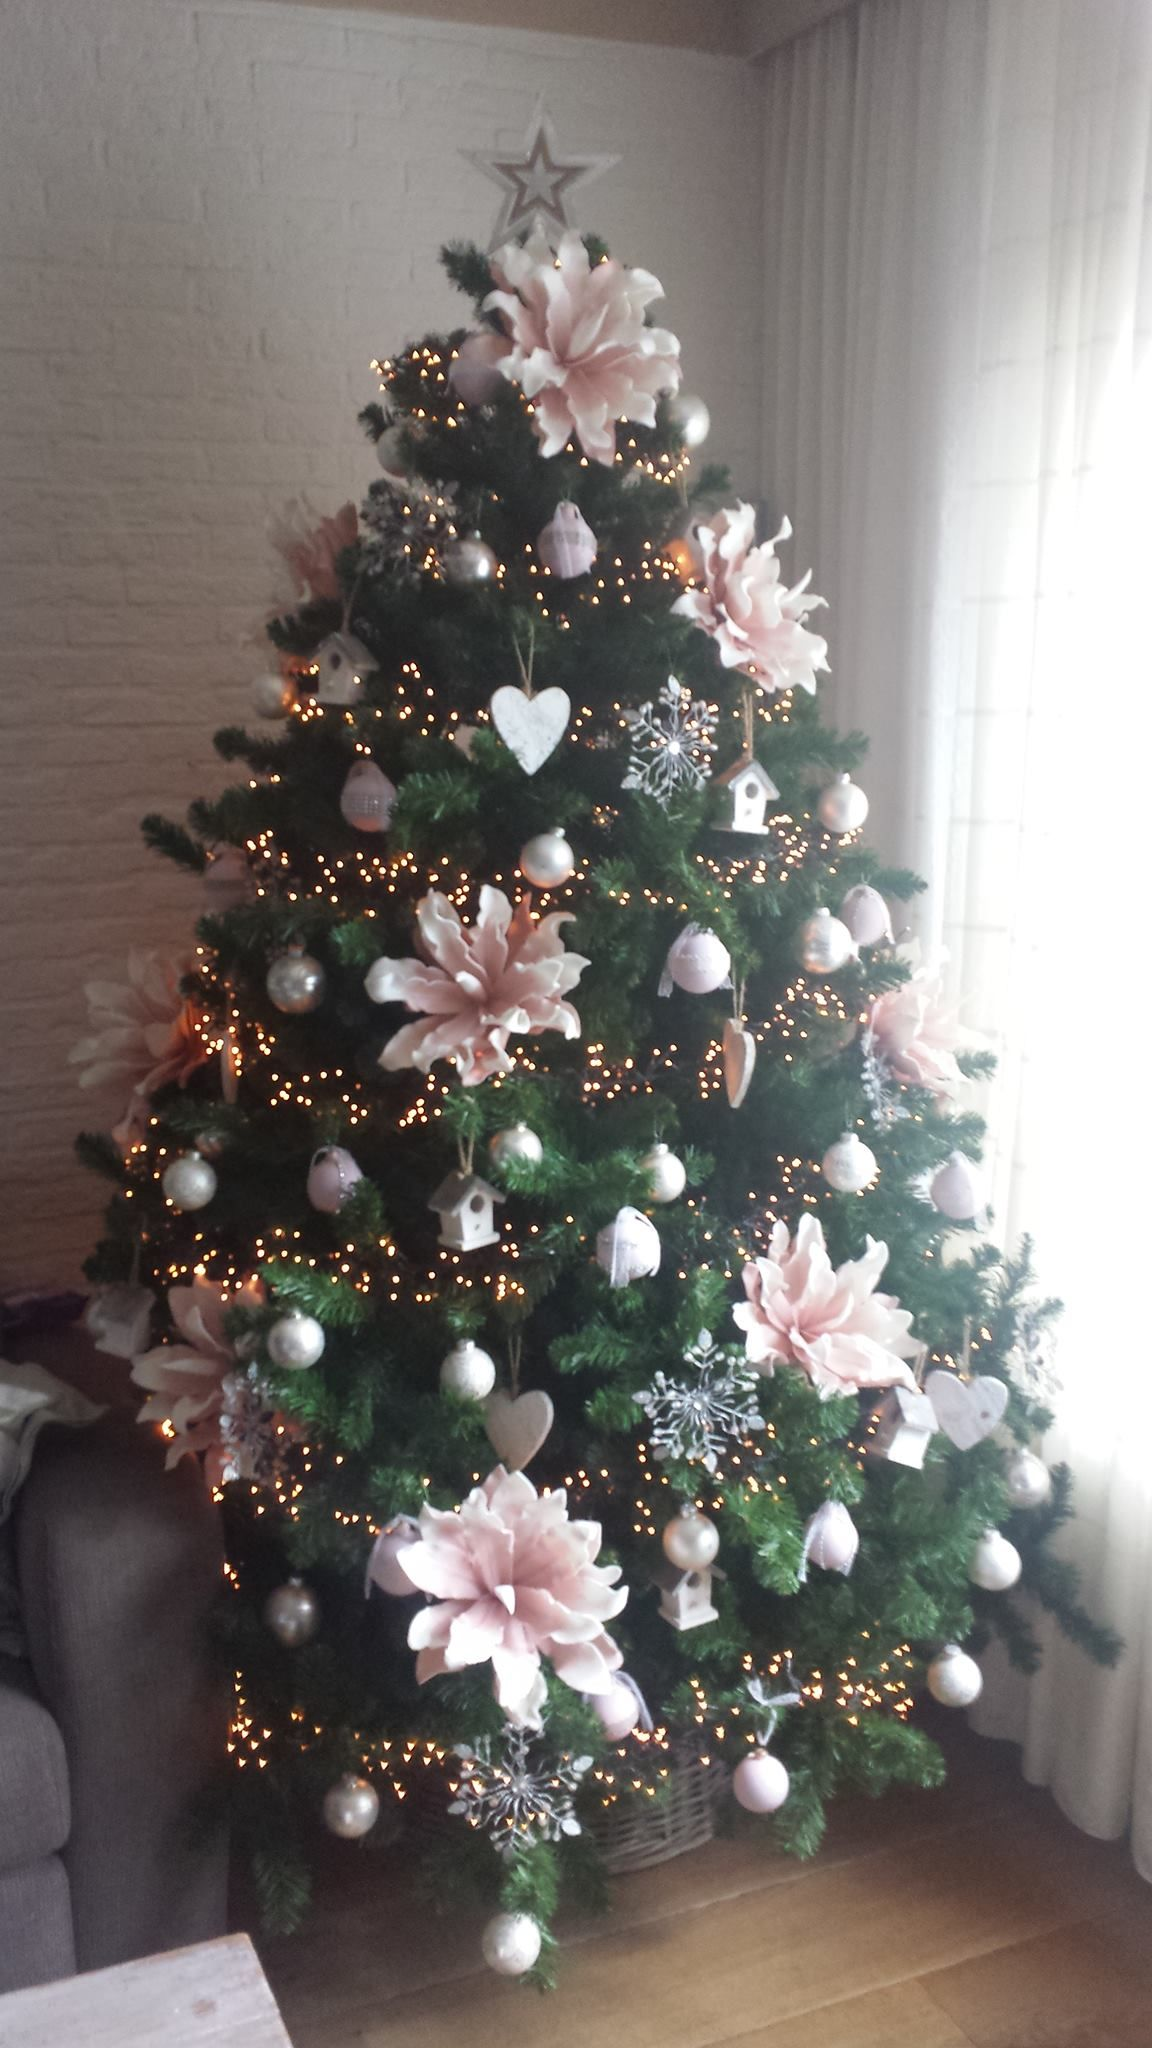 Elegant Christmas Tree Decorated With Big Pink Flowers And Silver